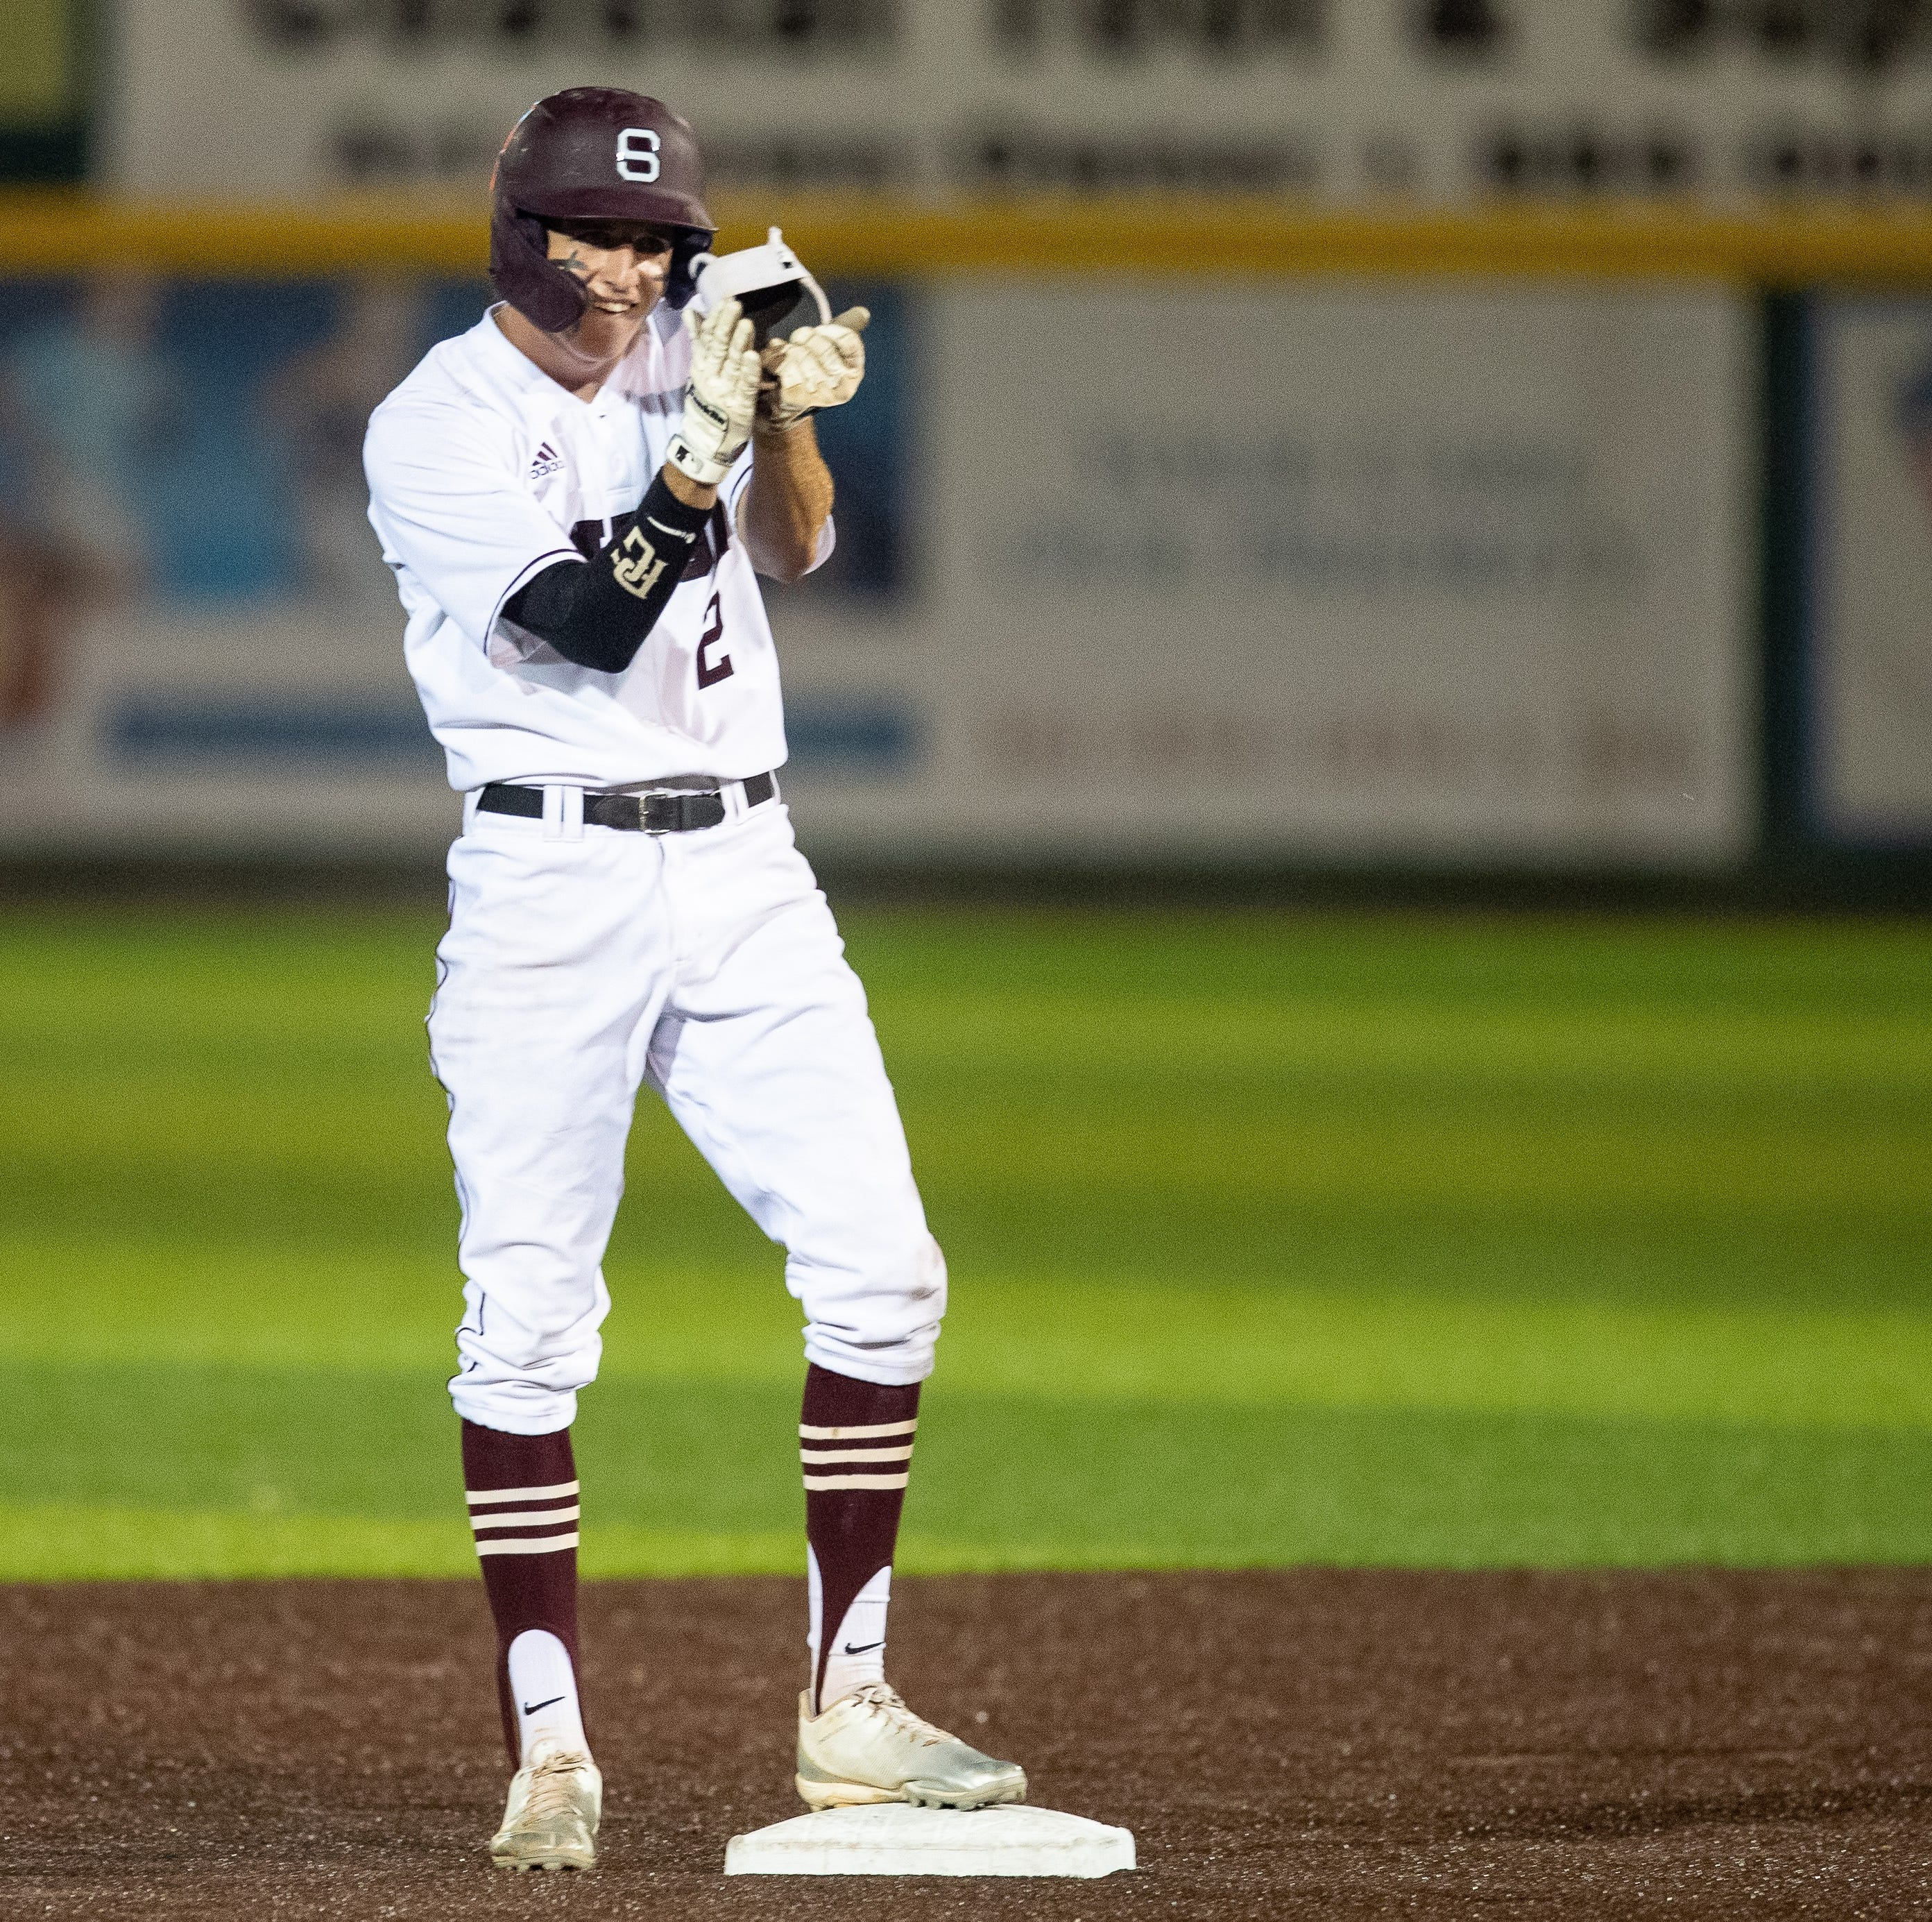 High School Baseball: Sinton rallies to top Robstown to open playoff series